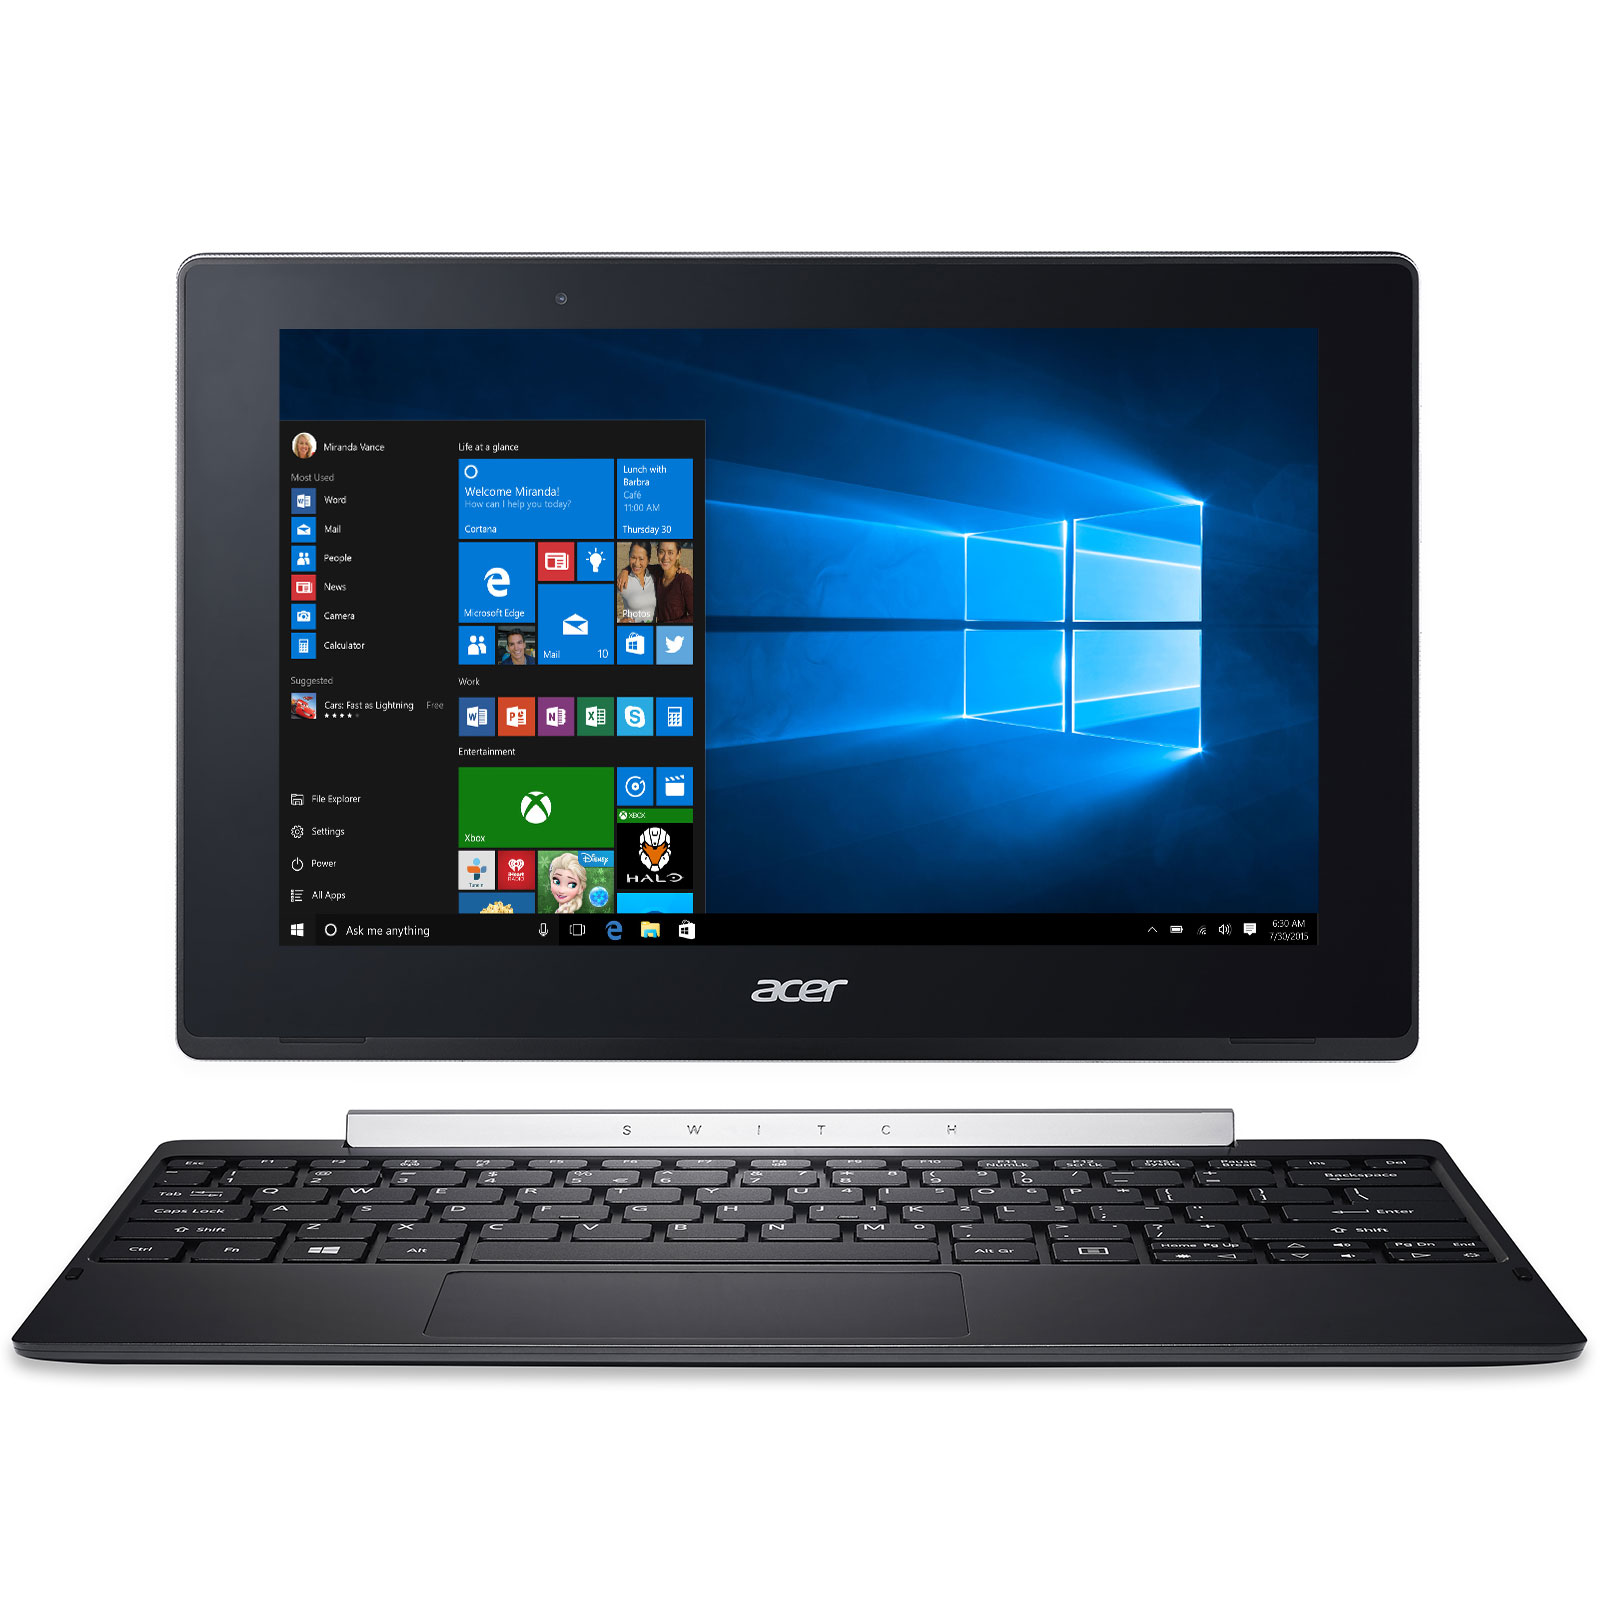 acer aspire switch 10 sw5 017 17bu tablette tactile acer sur ldlc. Black Bedroom Furniture Sets. Home Design Ideas